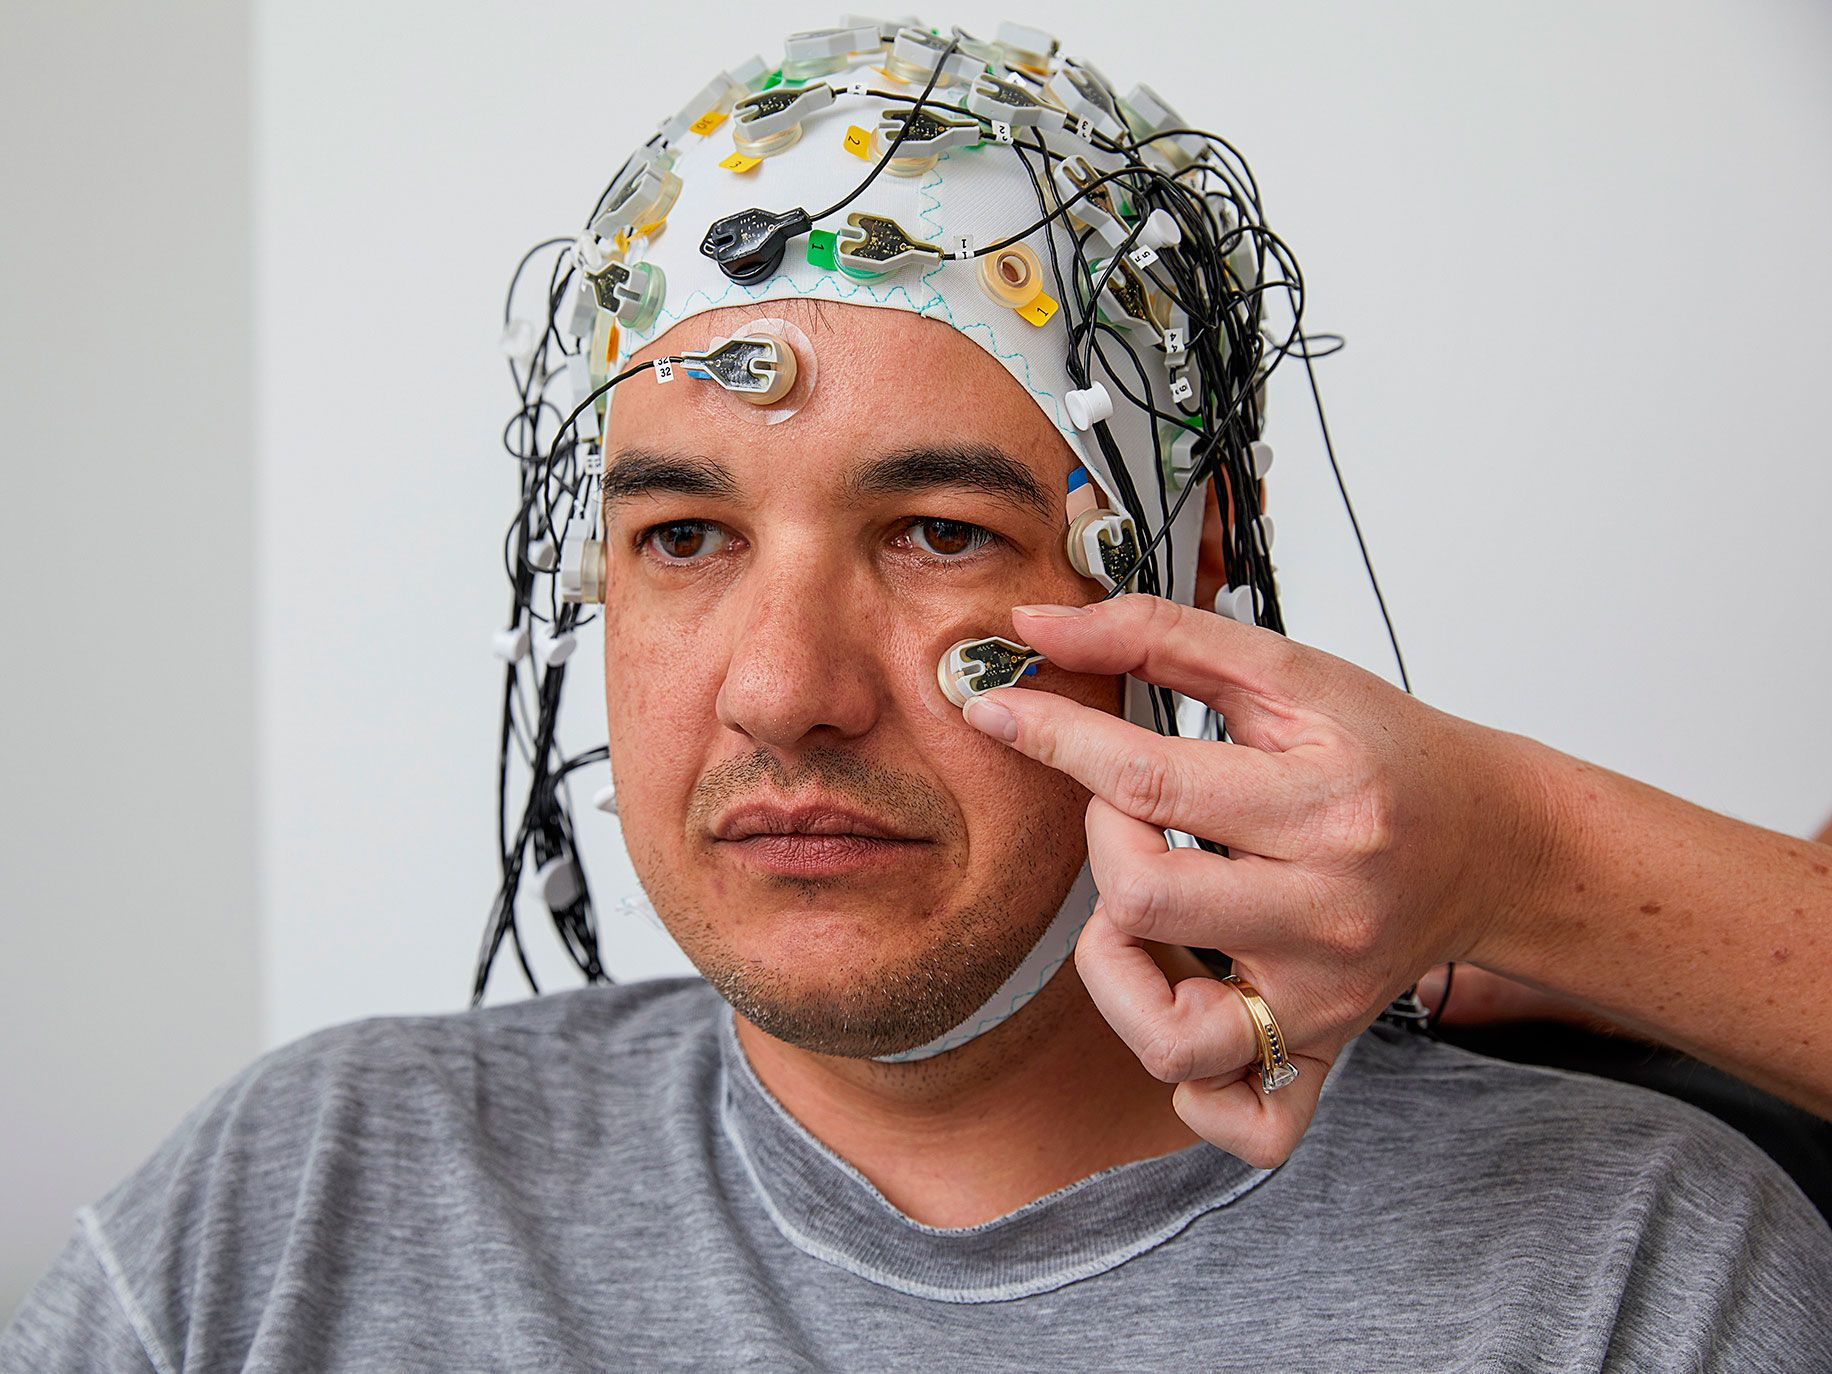 Marco Lopes, neuroscientist and operations lead at Neuroverse, dons an EEG cap and sensors to link his brain activity to a computer.